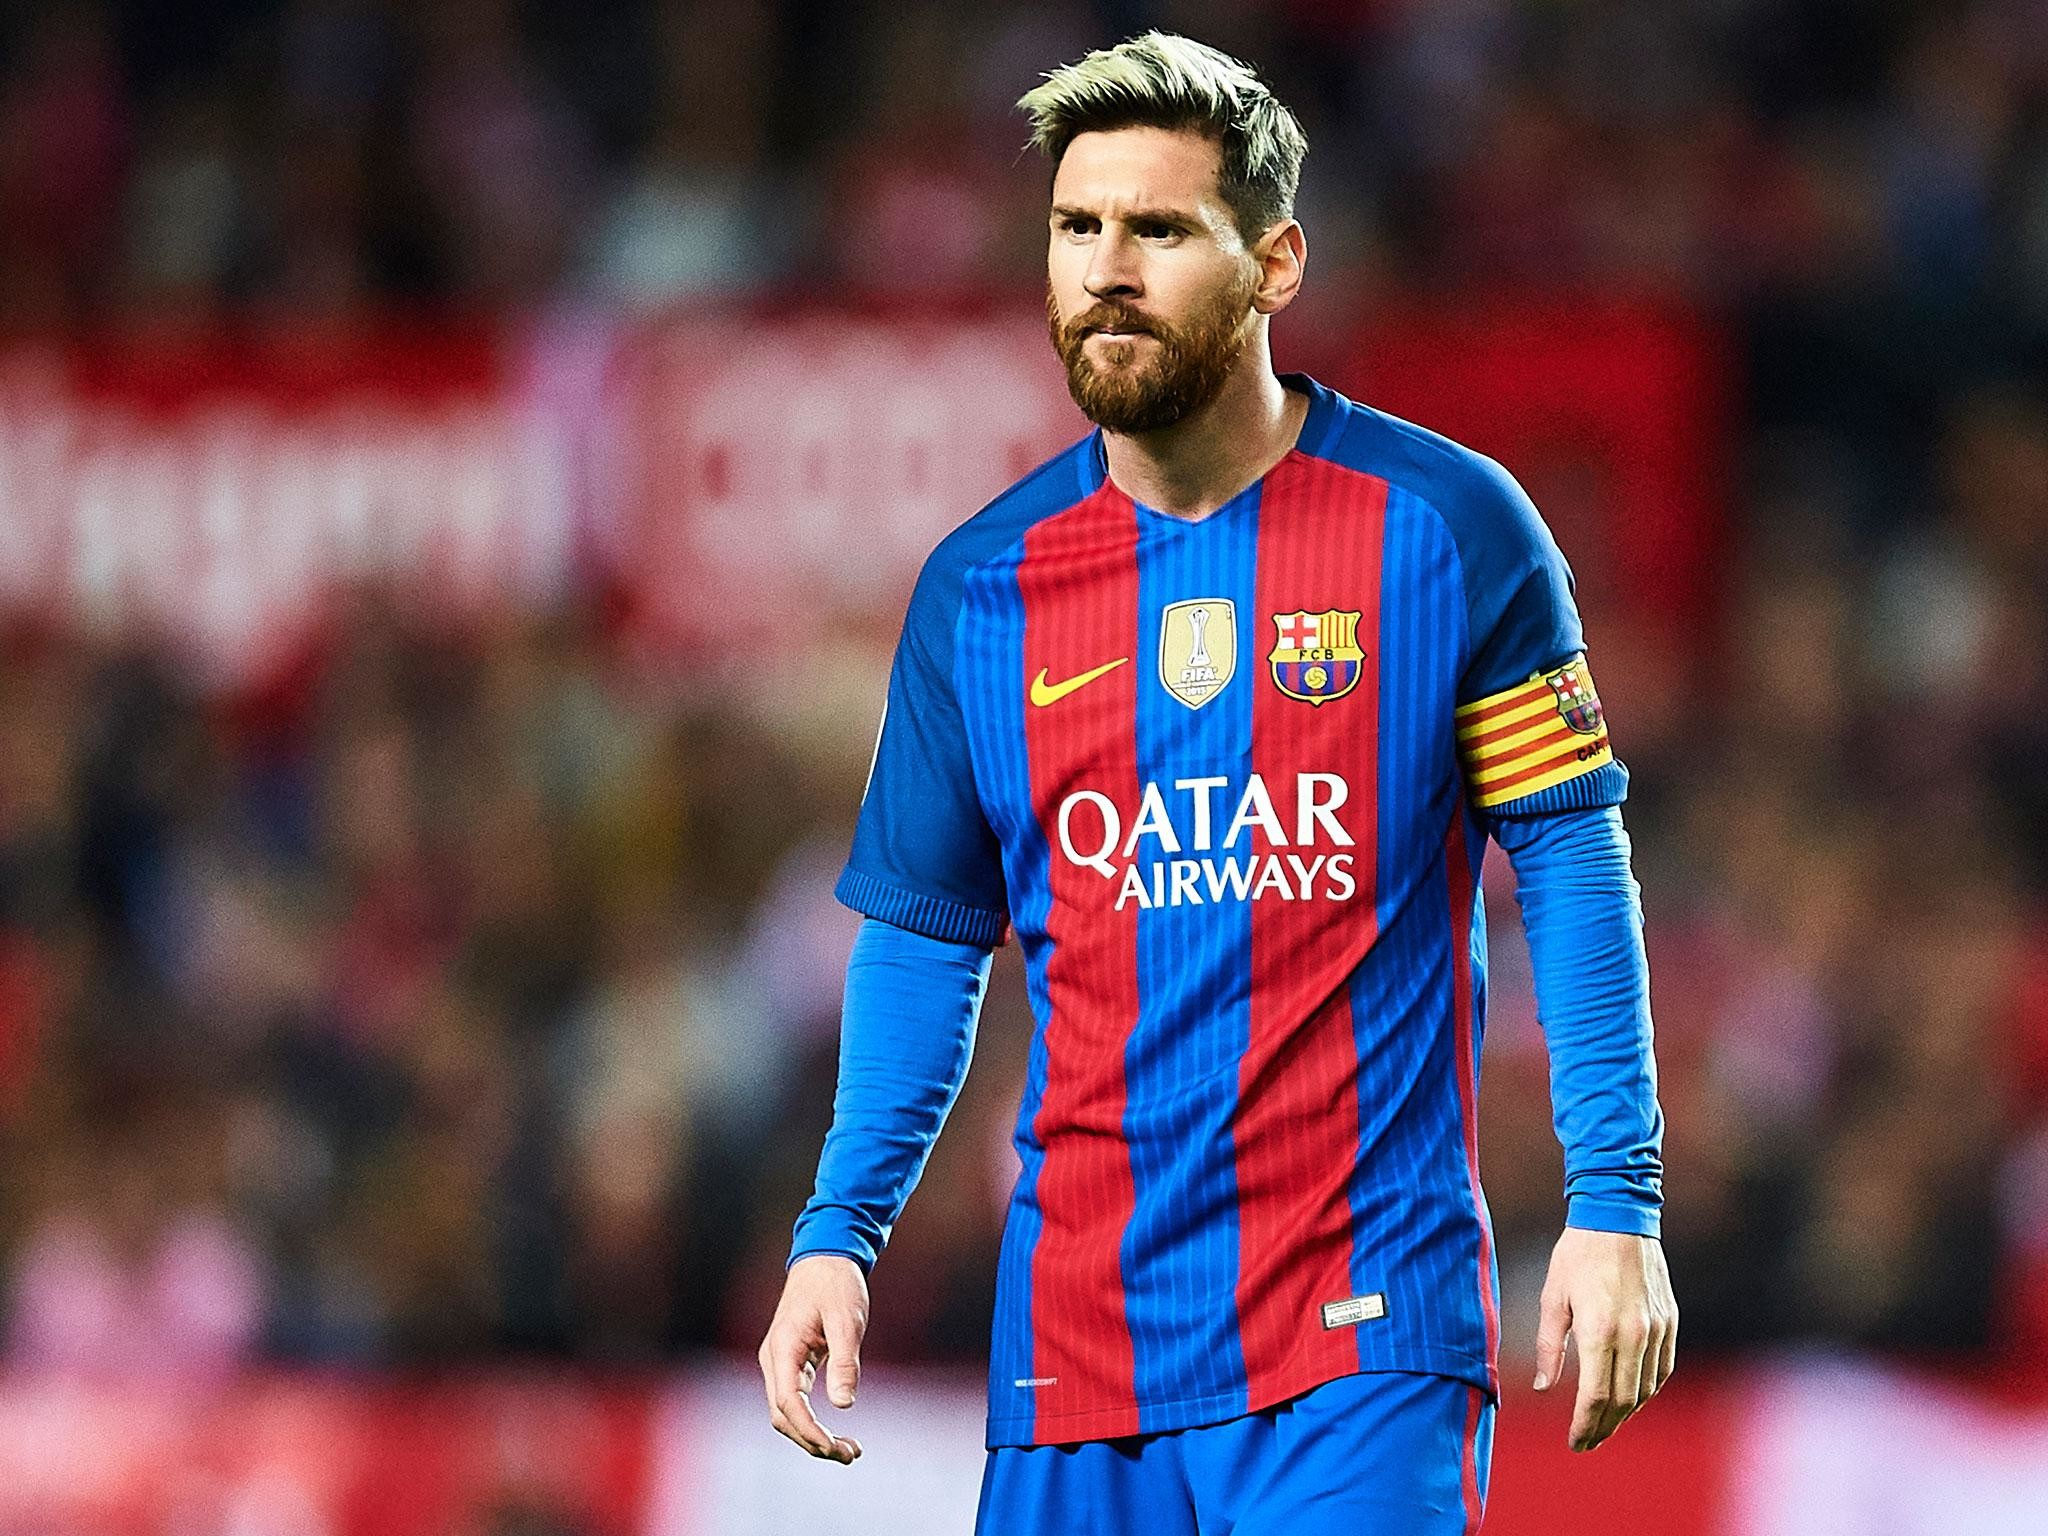 Lionel Messi transfer news: Barcelona believe Marca story was revenge for  snubbing awards ceremony | The Independent